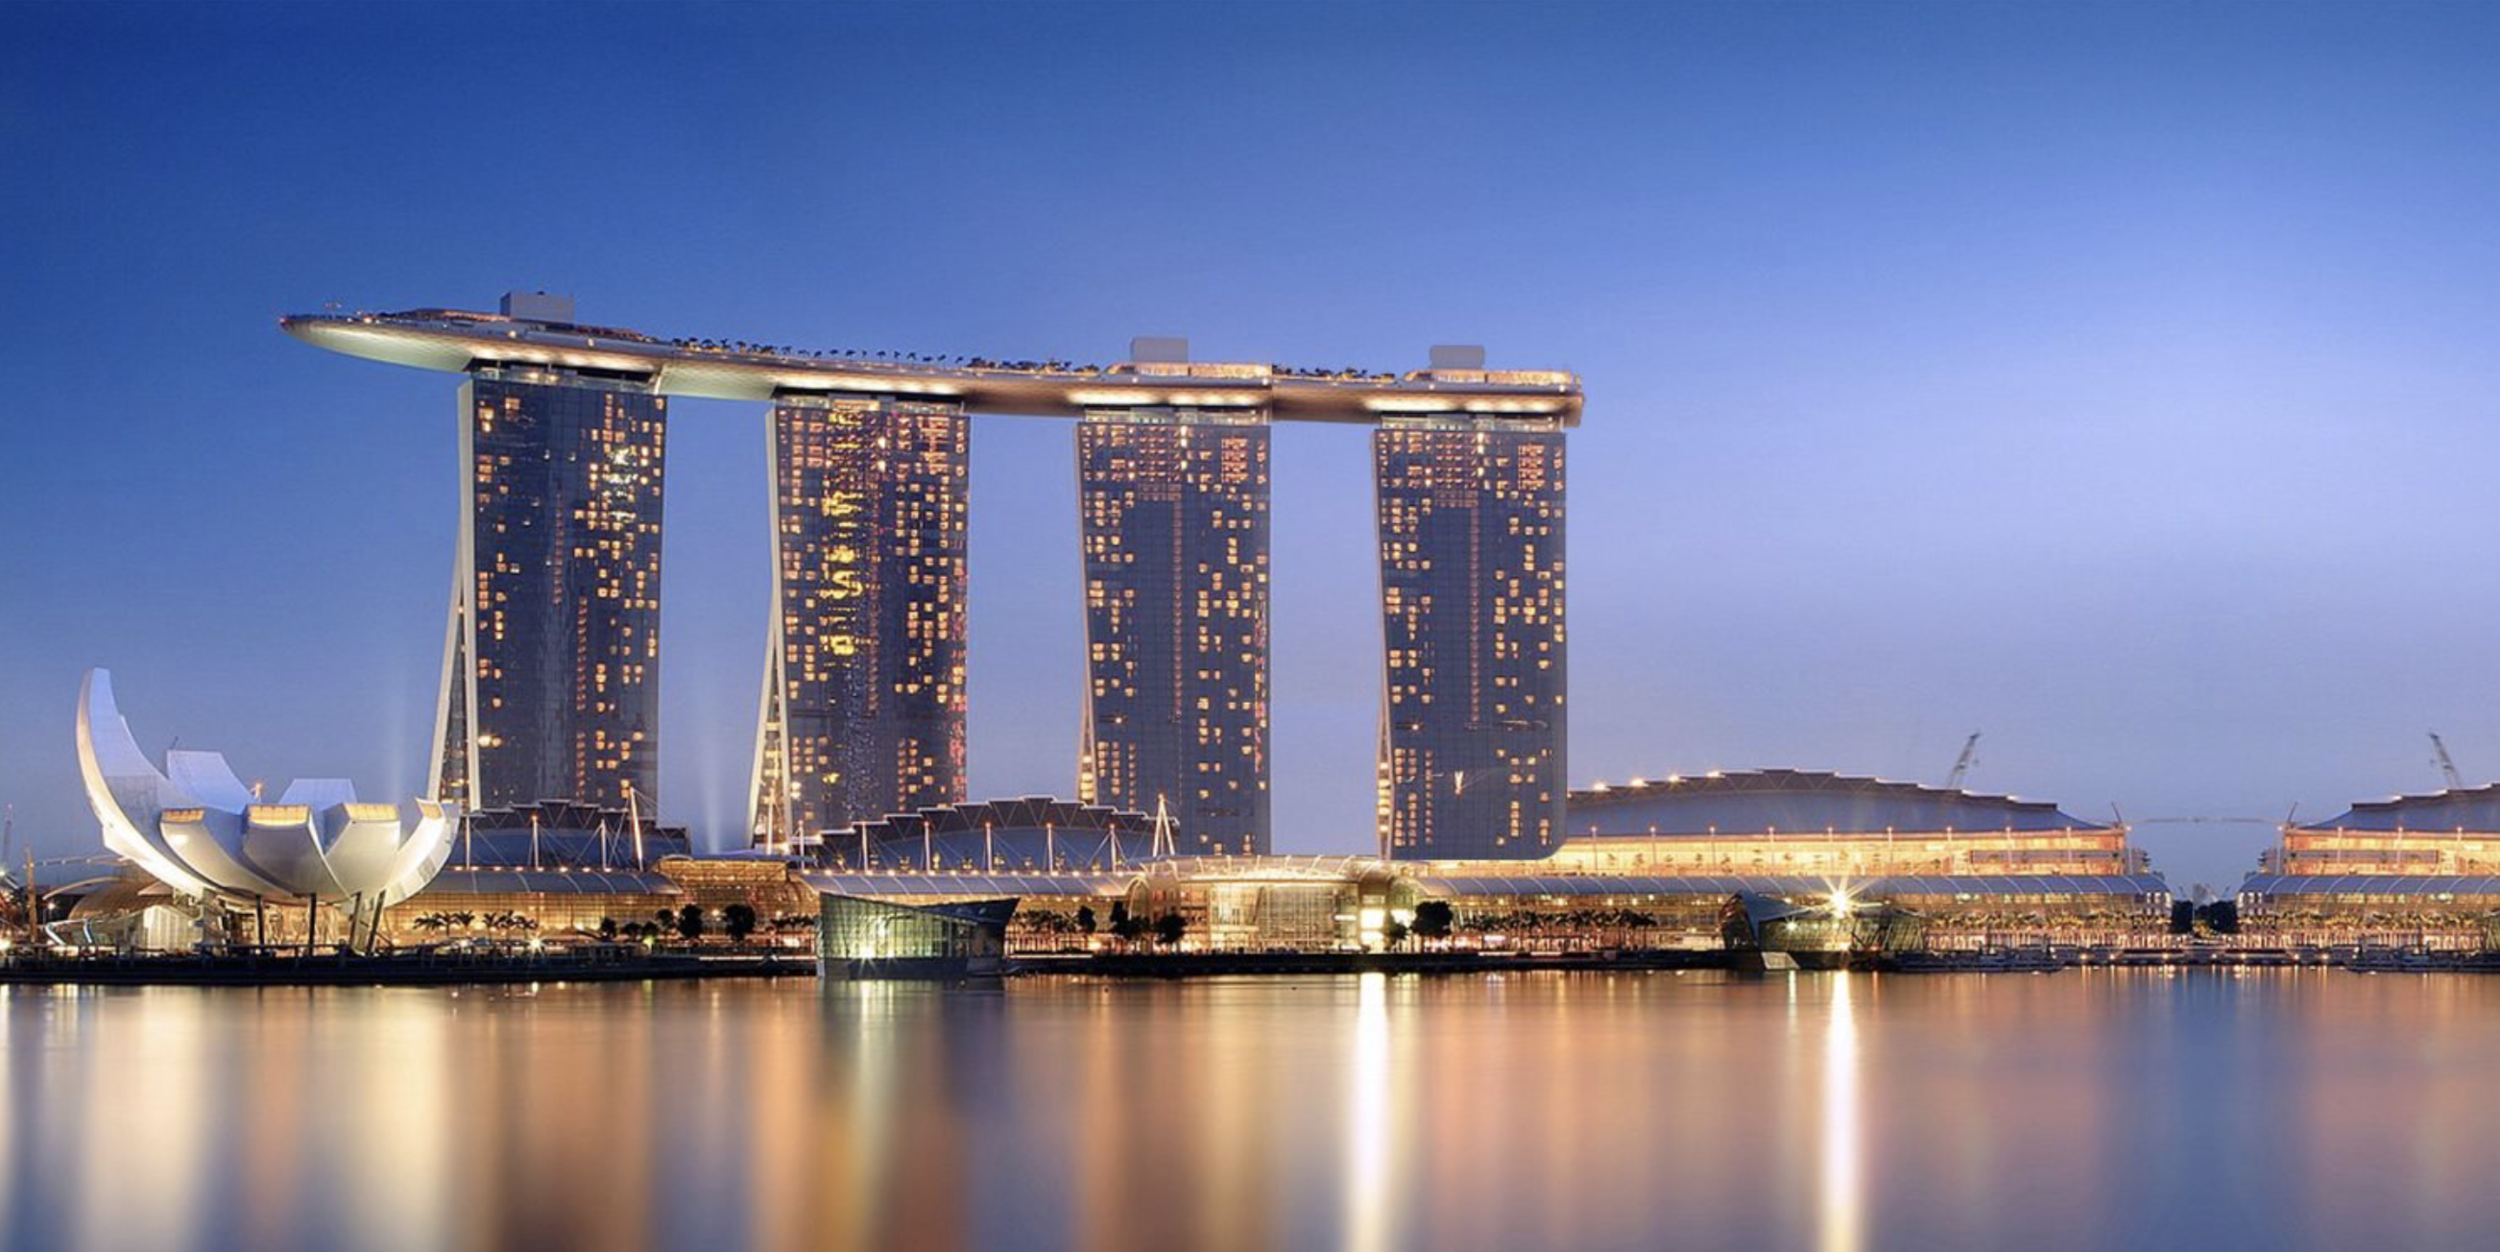 Accommodation: - Marina Bay SandsThis iconic integrated resort boasts luxury accommodations, upscale shopping and an infinity pool with unparalleled views of the city.